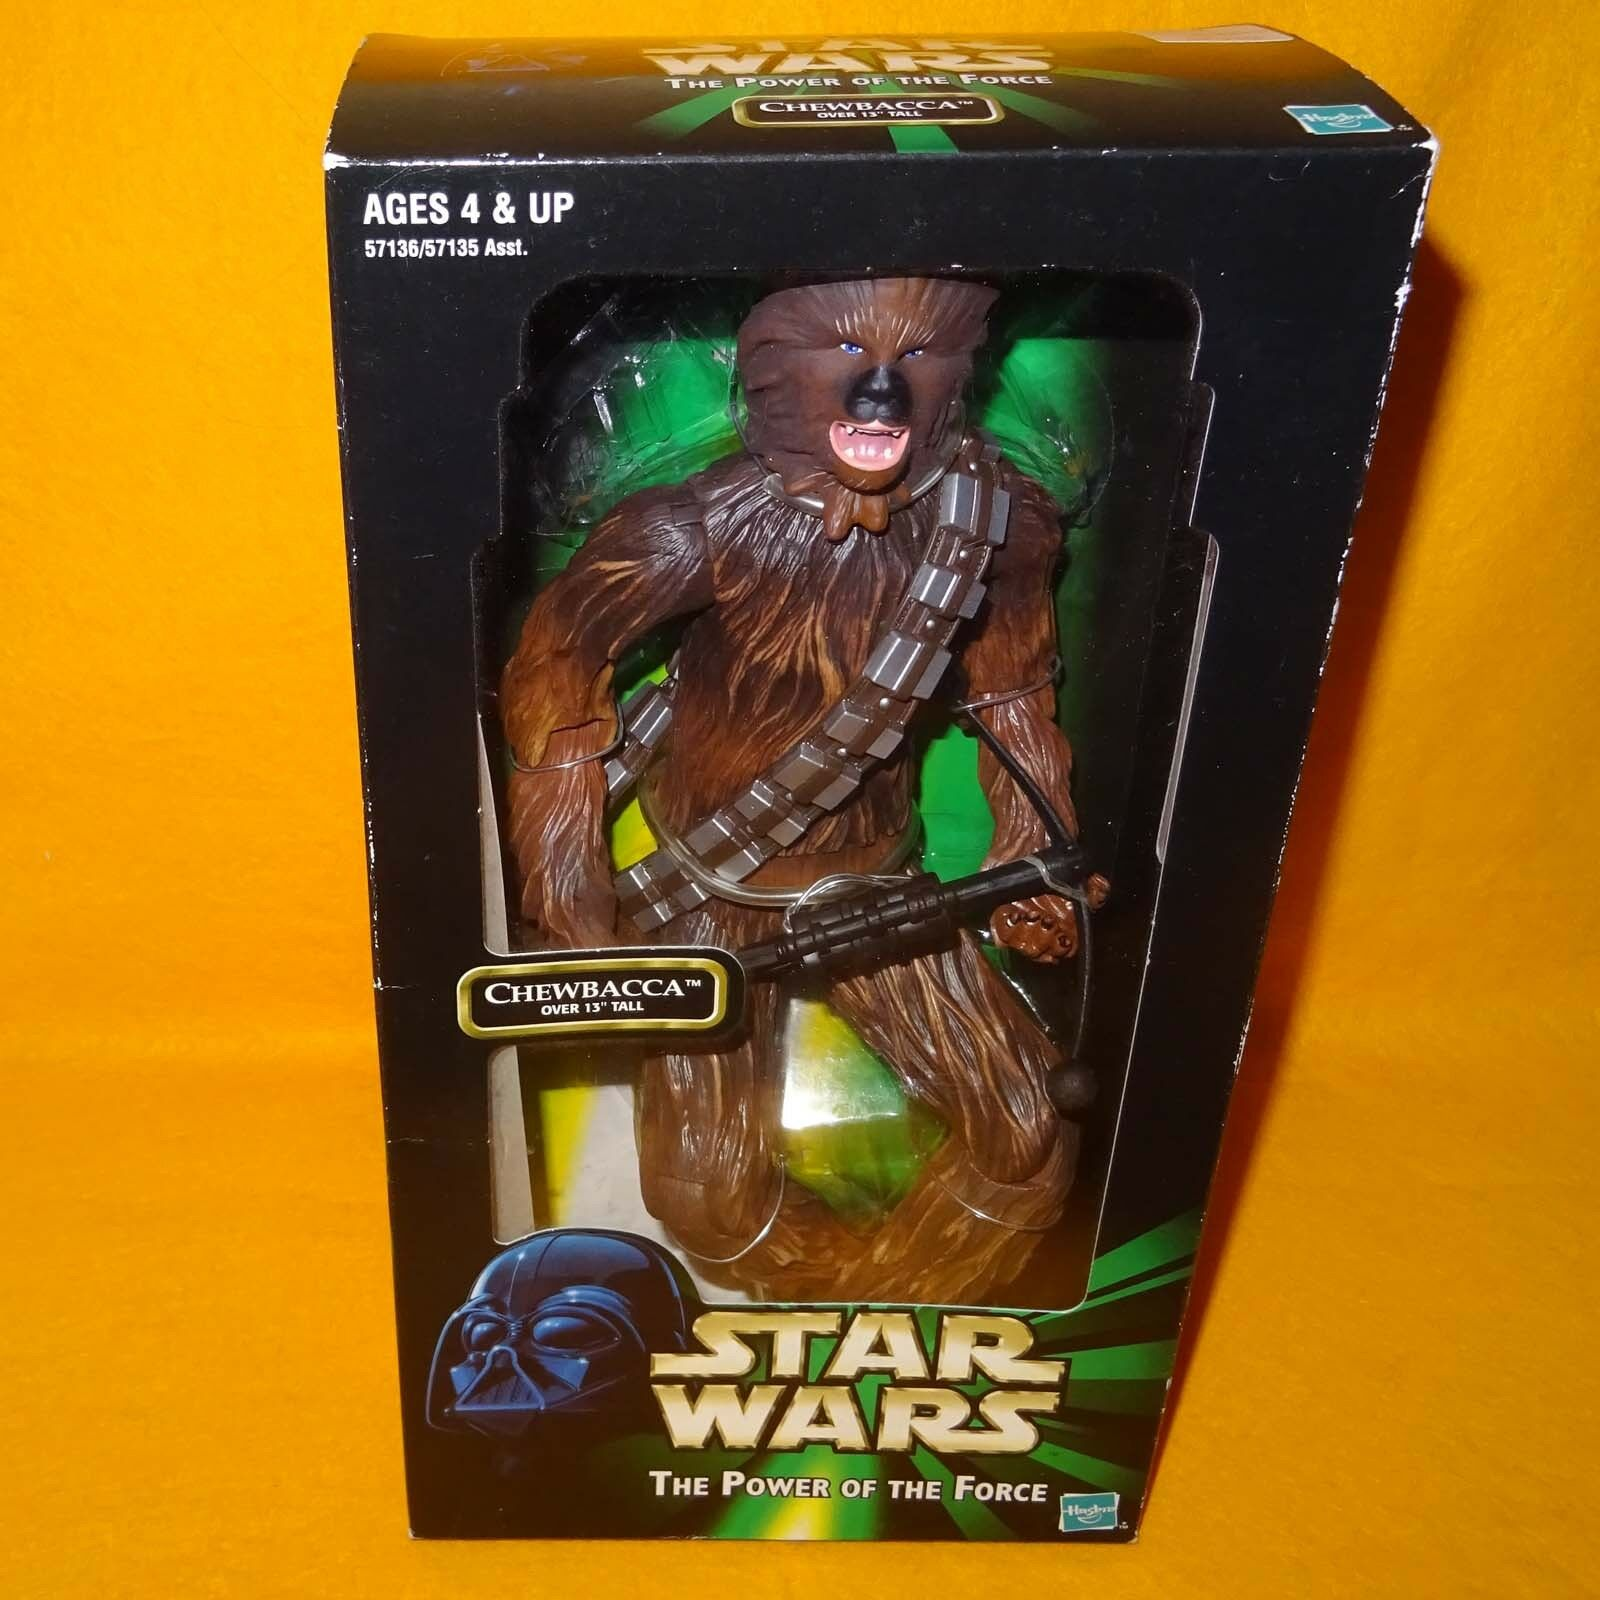 1999 HASBRO STAR WARS THE POWER OF THE FORCE CHEWBACCA 13  FIGURE BOXED SEALED